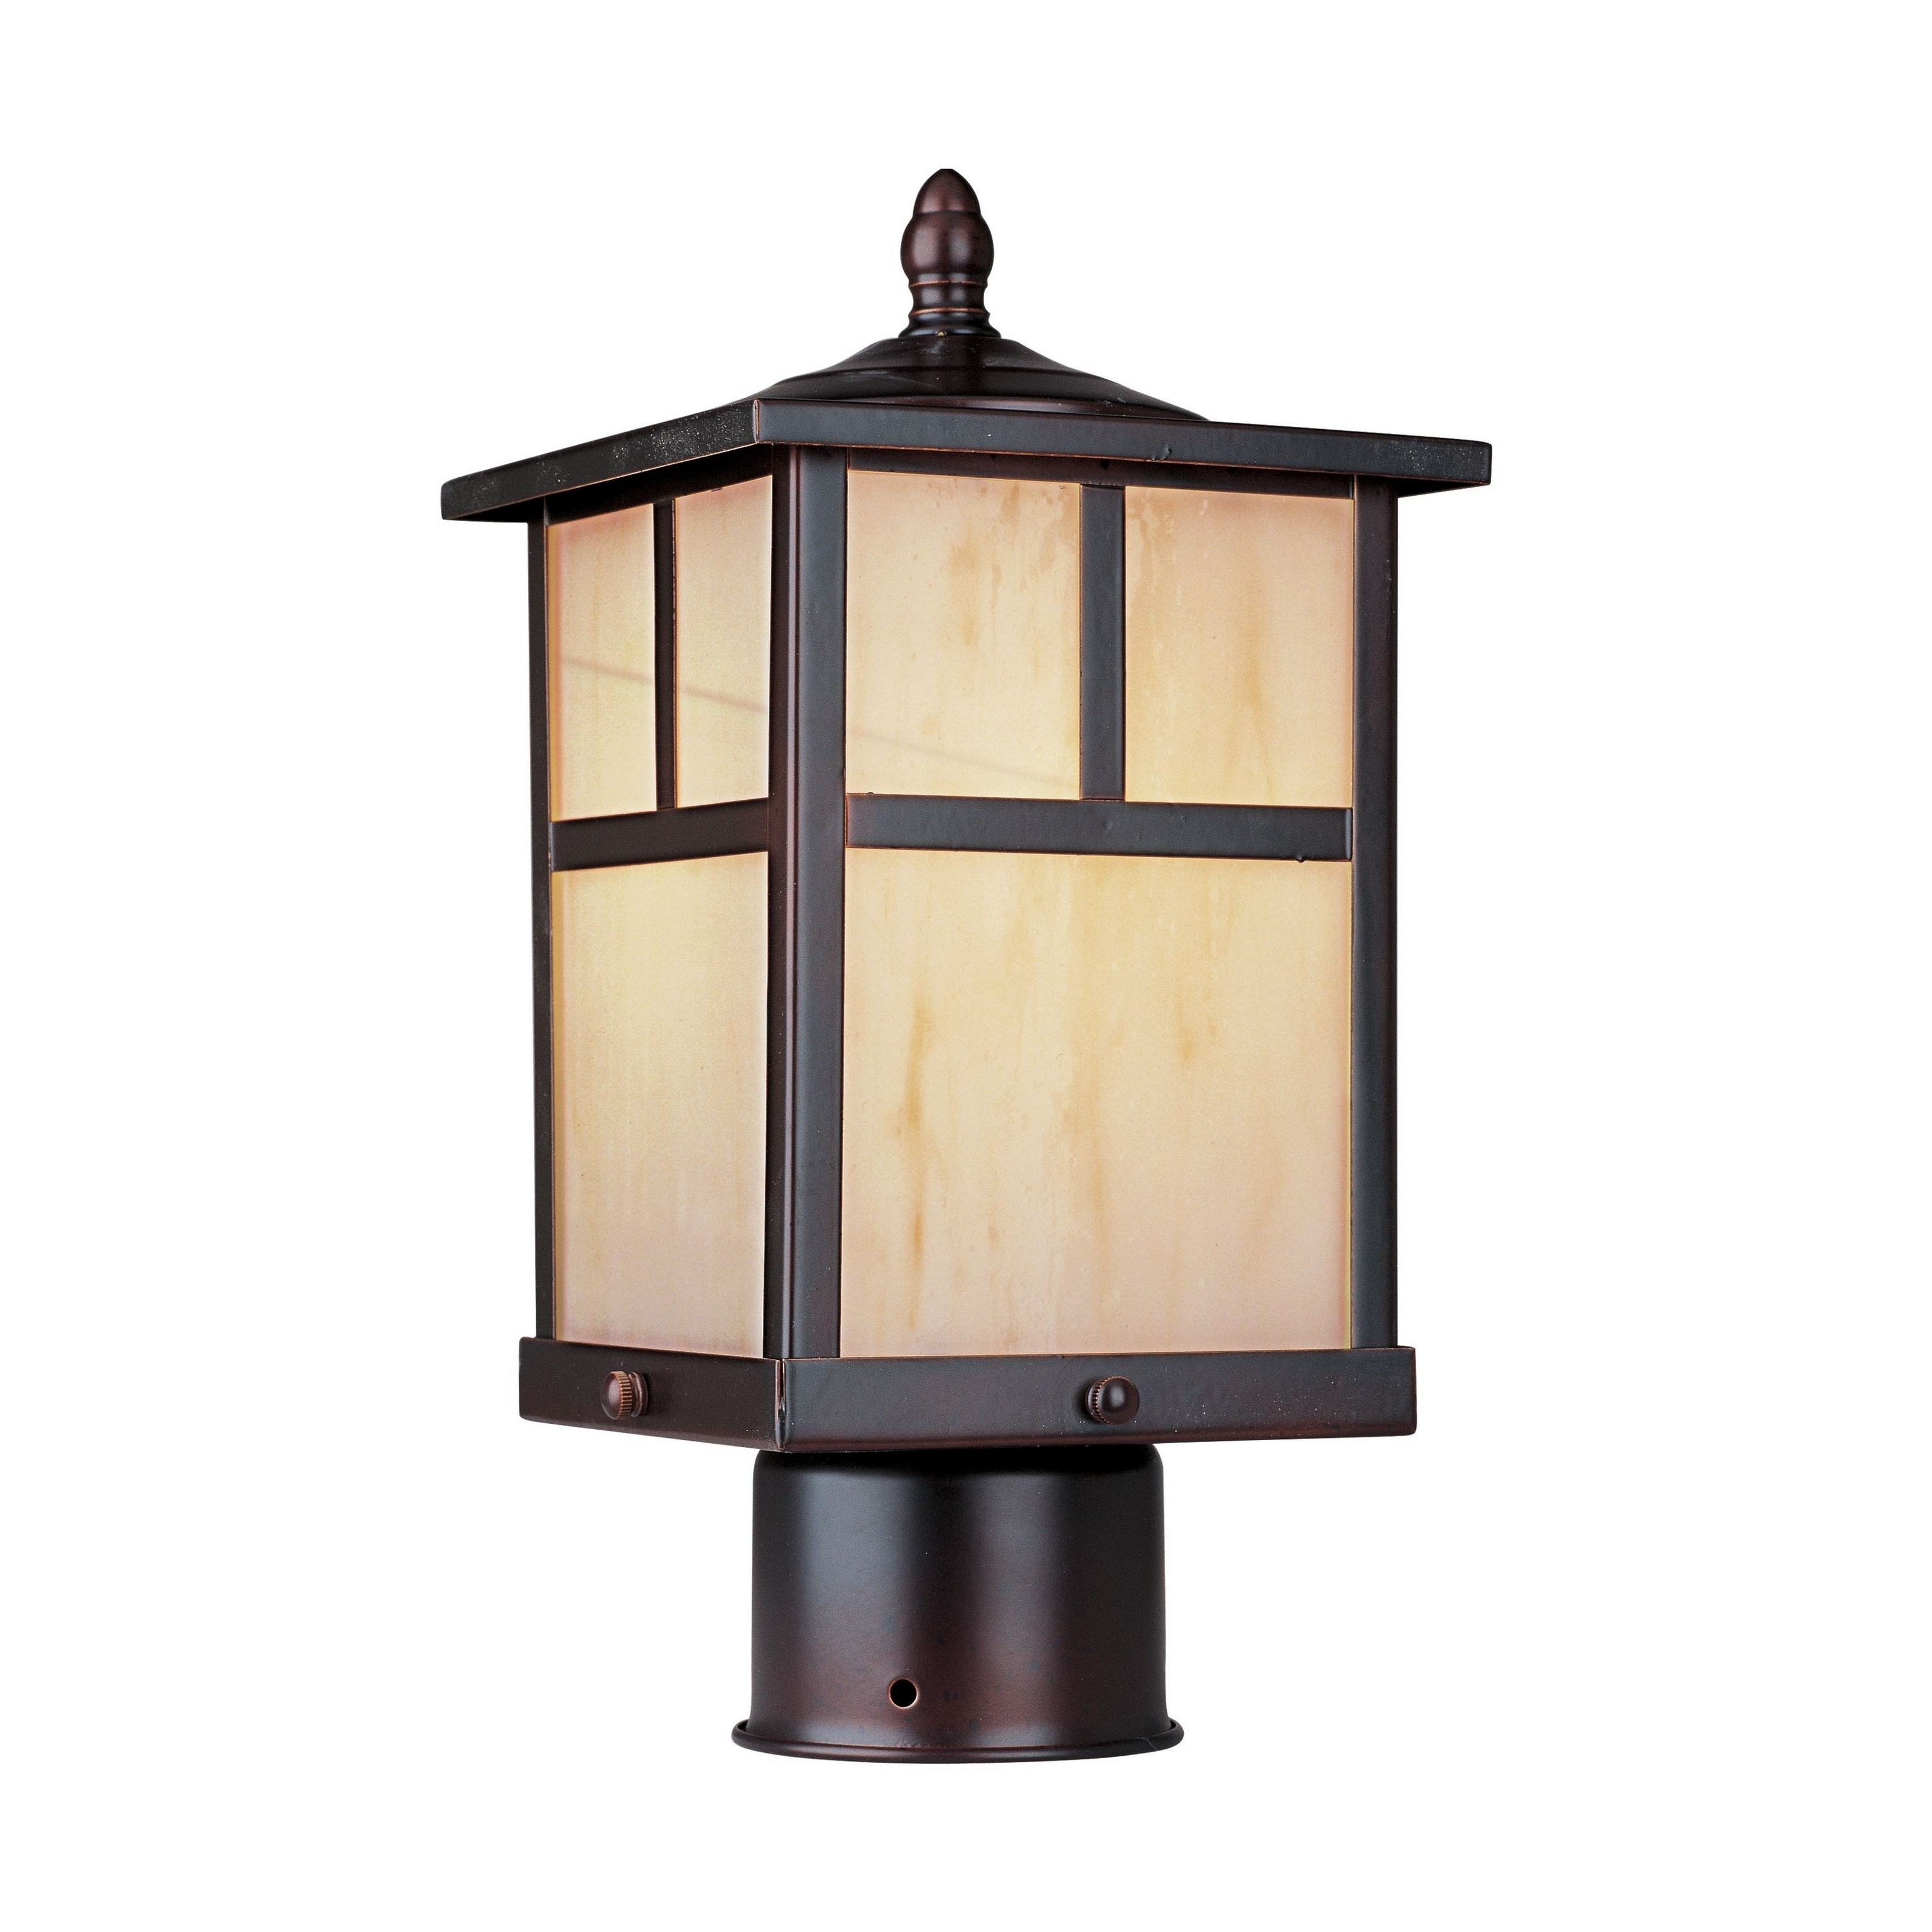 Famous Contemporary Solar Driveway Lights At Home Depot Within Kitchen : Astounding Solar Lights Outdoor Home Depot Photo Idea Best (View 8 of 20)